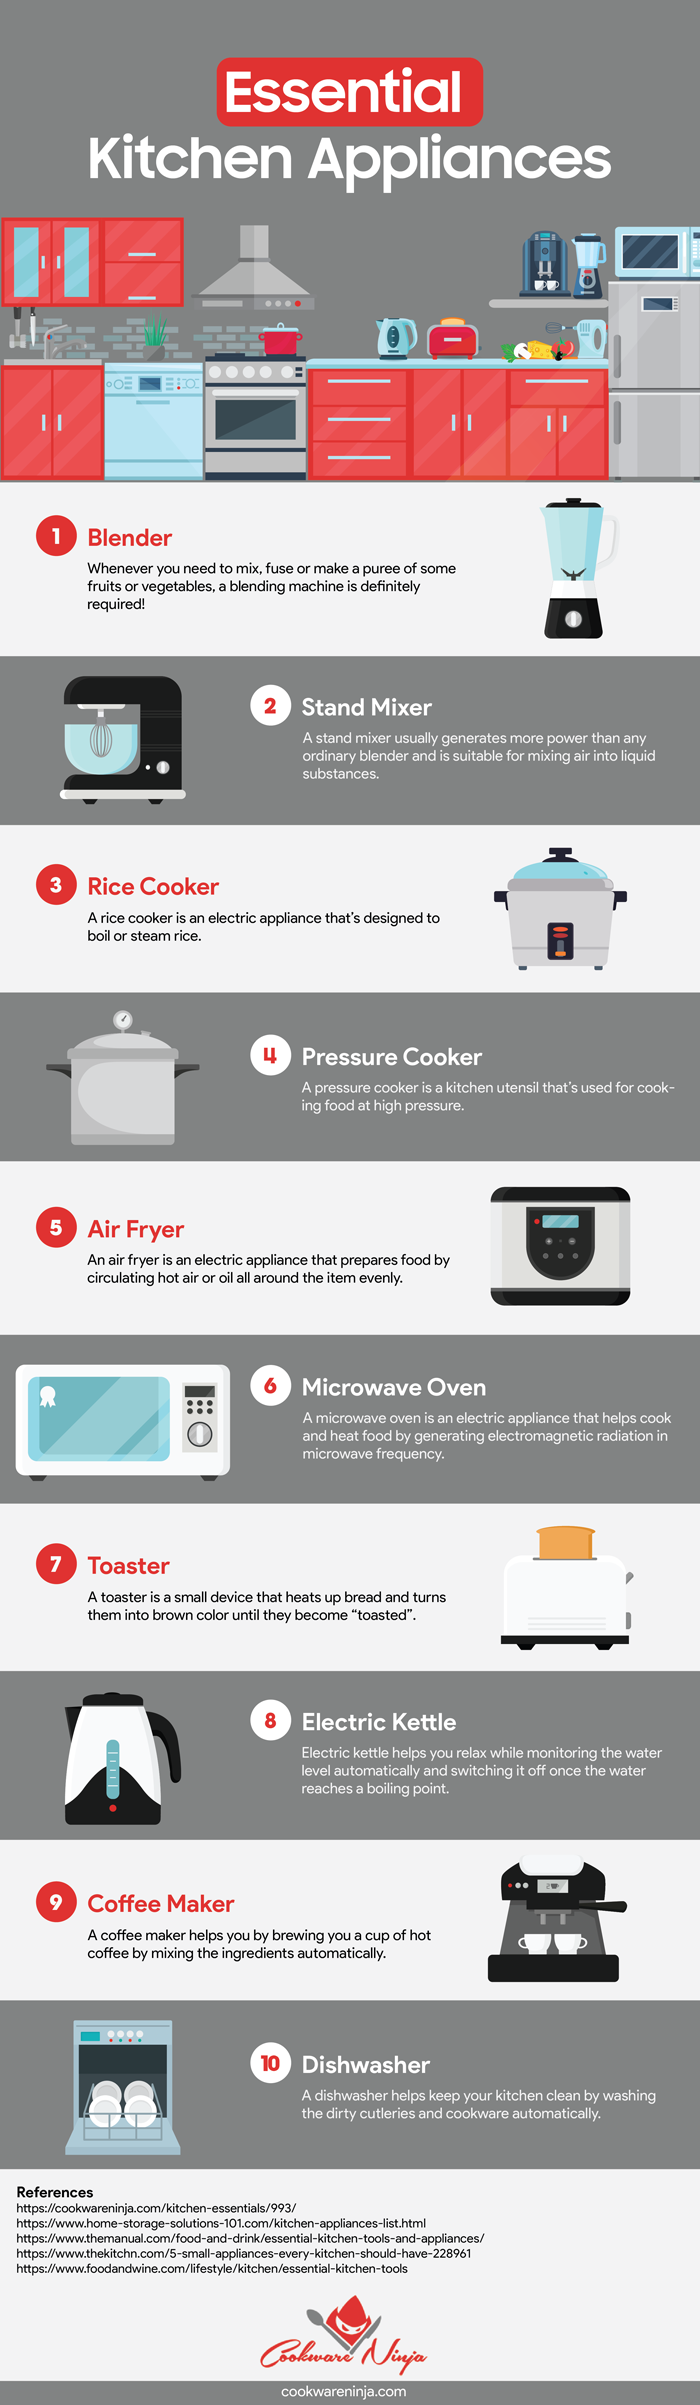 Essential Kitchen Appliances Infographic